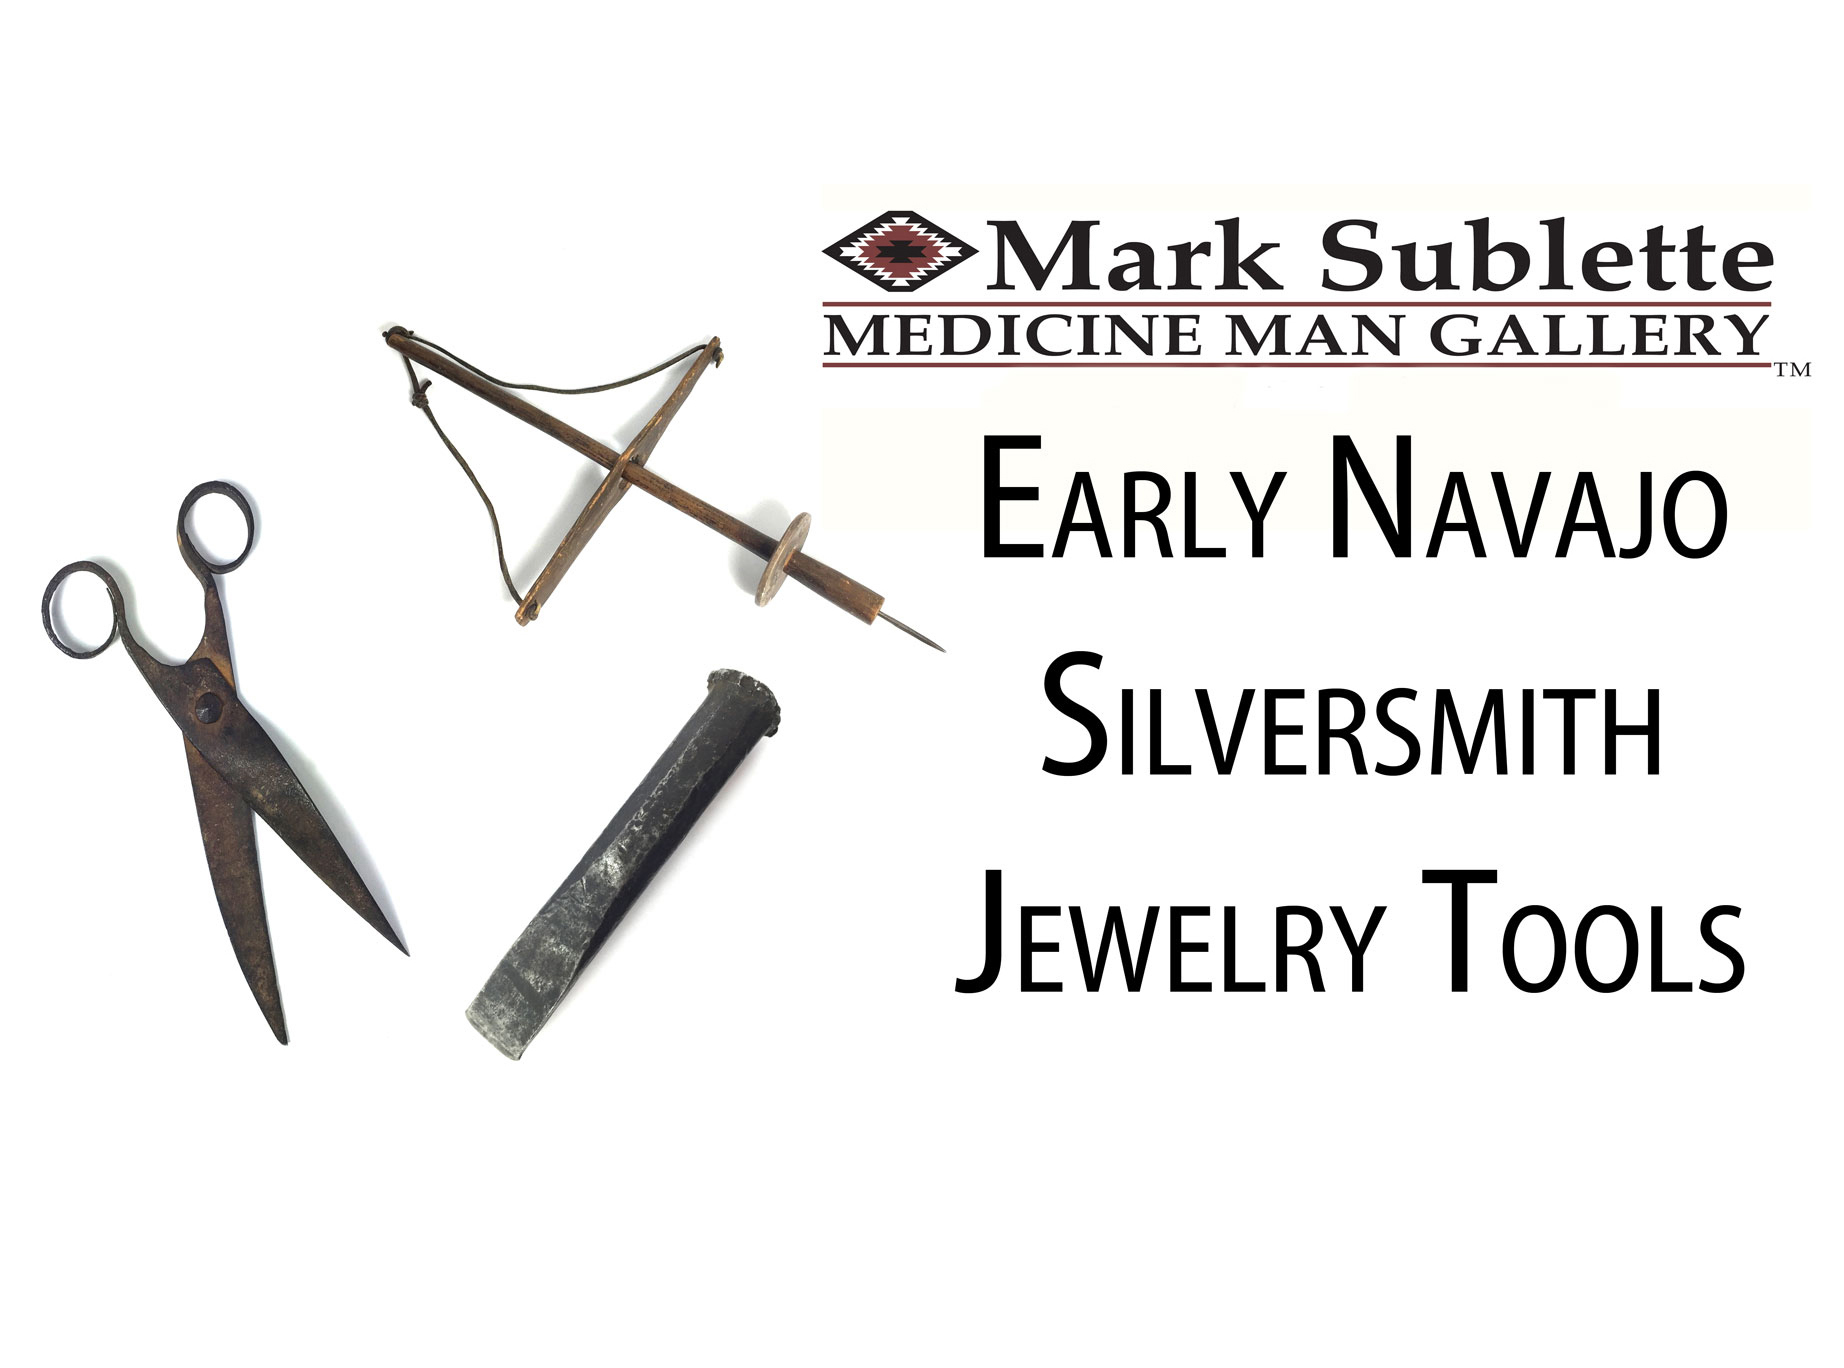 Native American Jewelry: How to identify early Navajo Silversmith Jewelry Tools